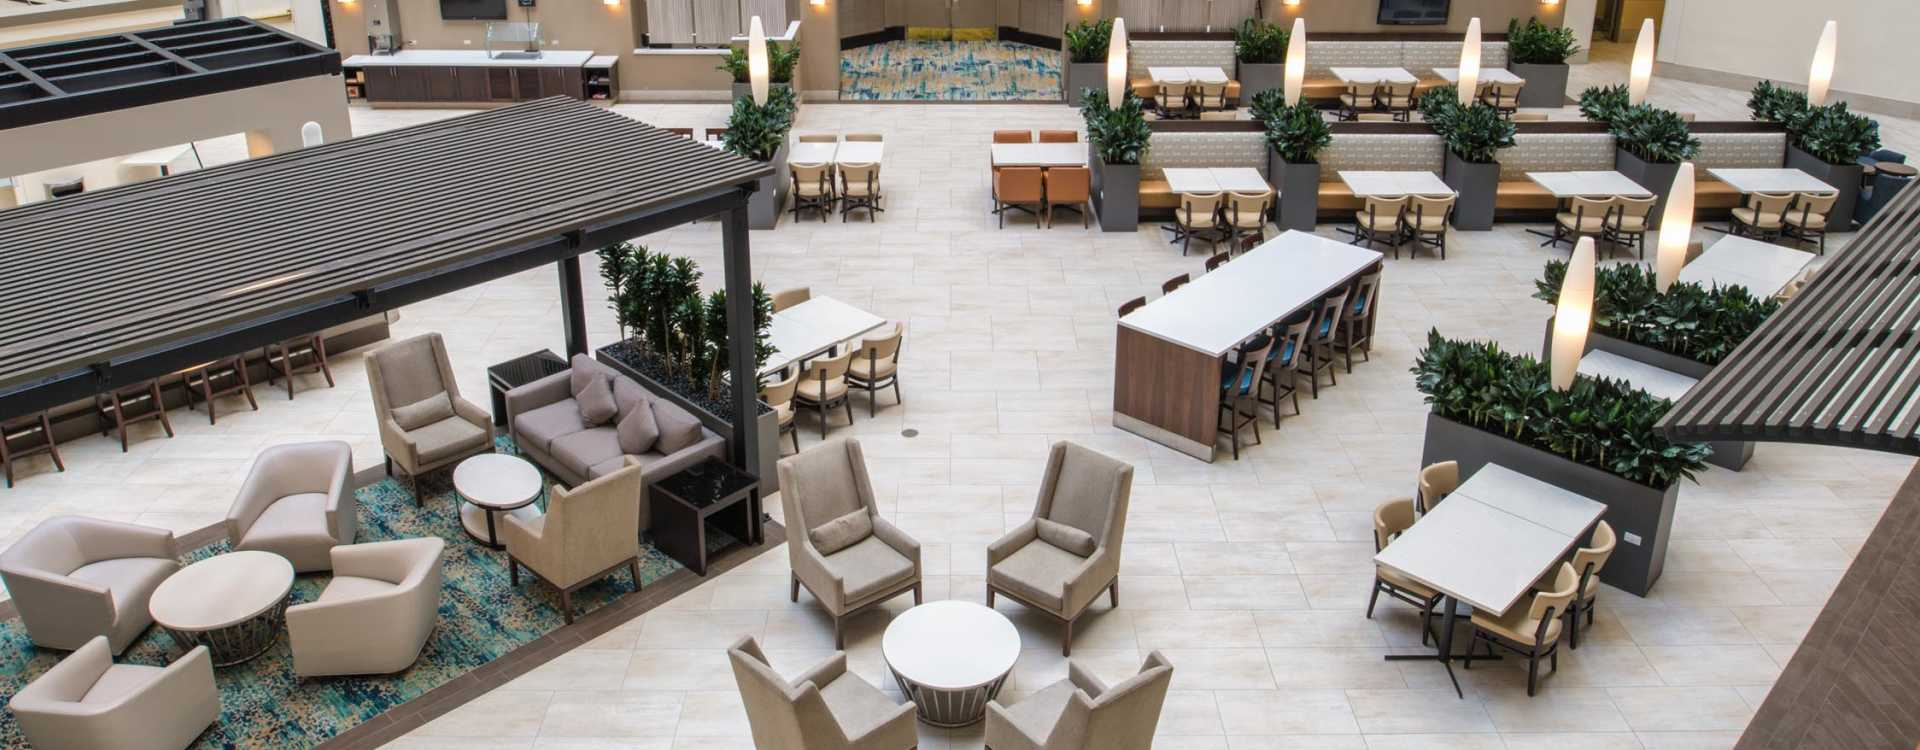 Newly renovated Atrium